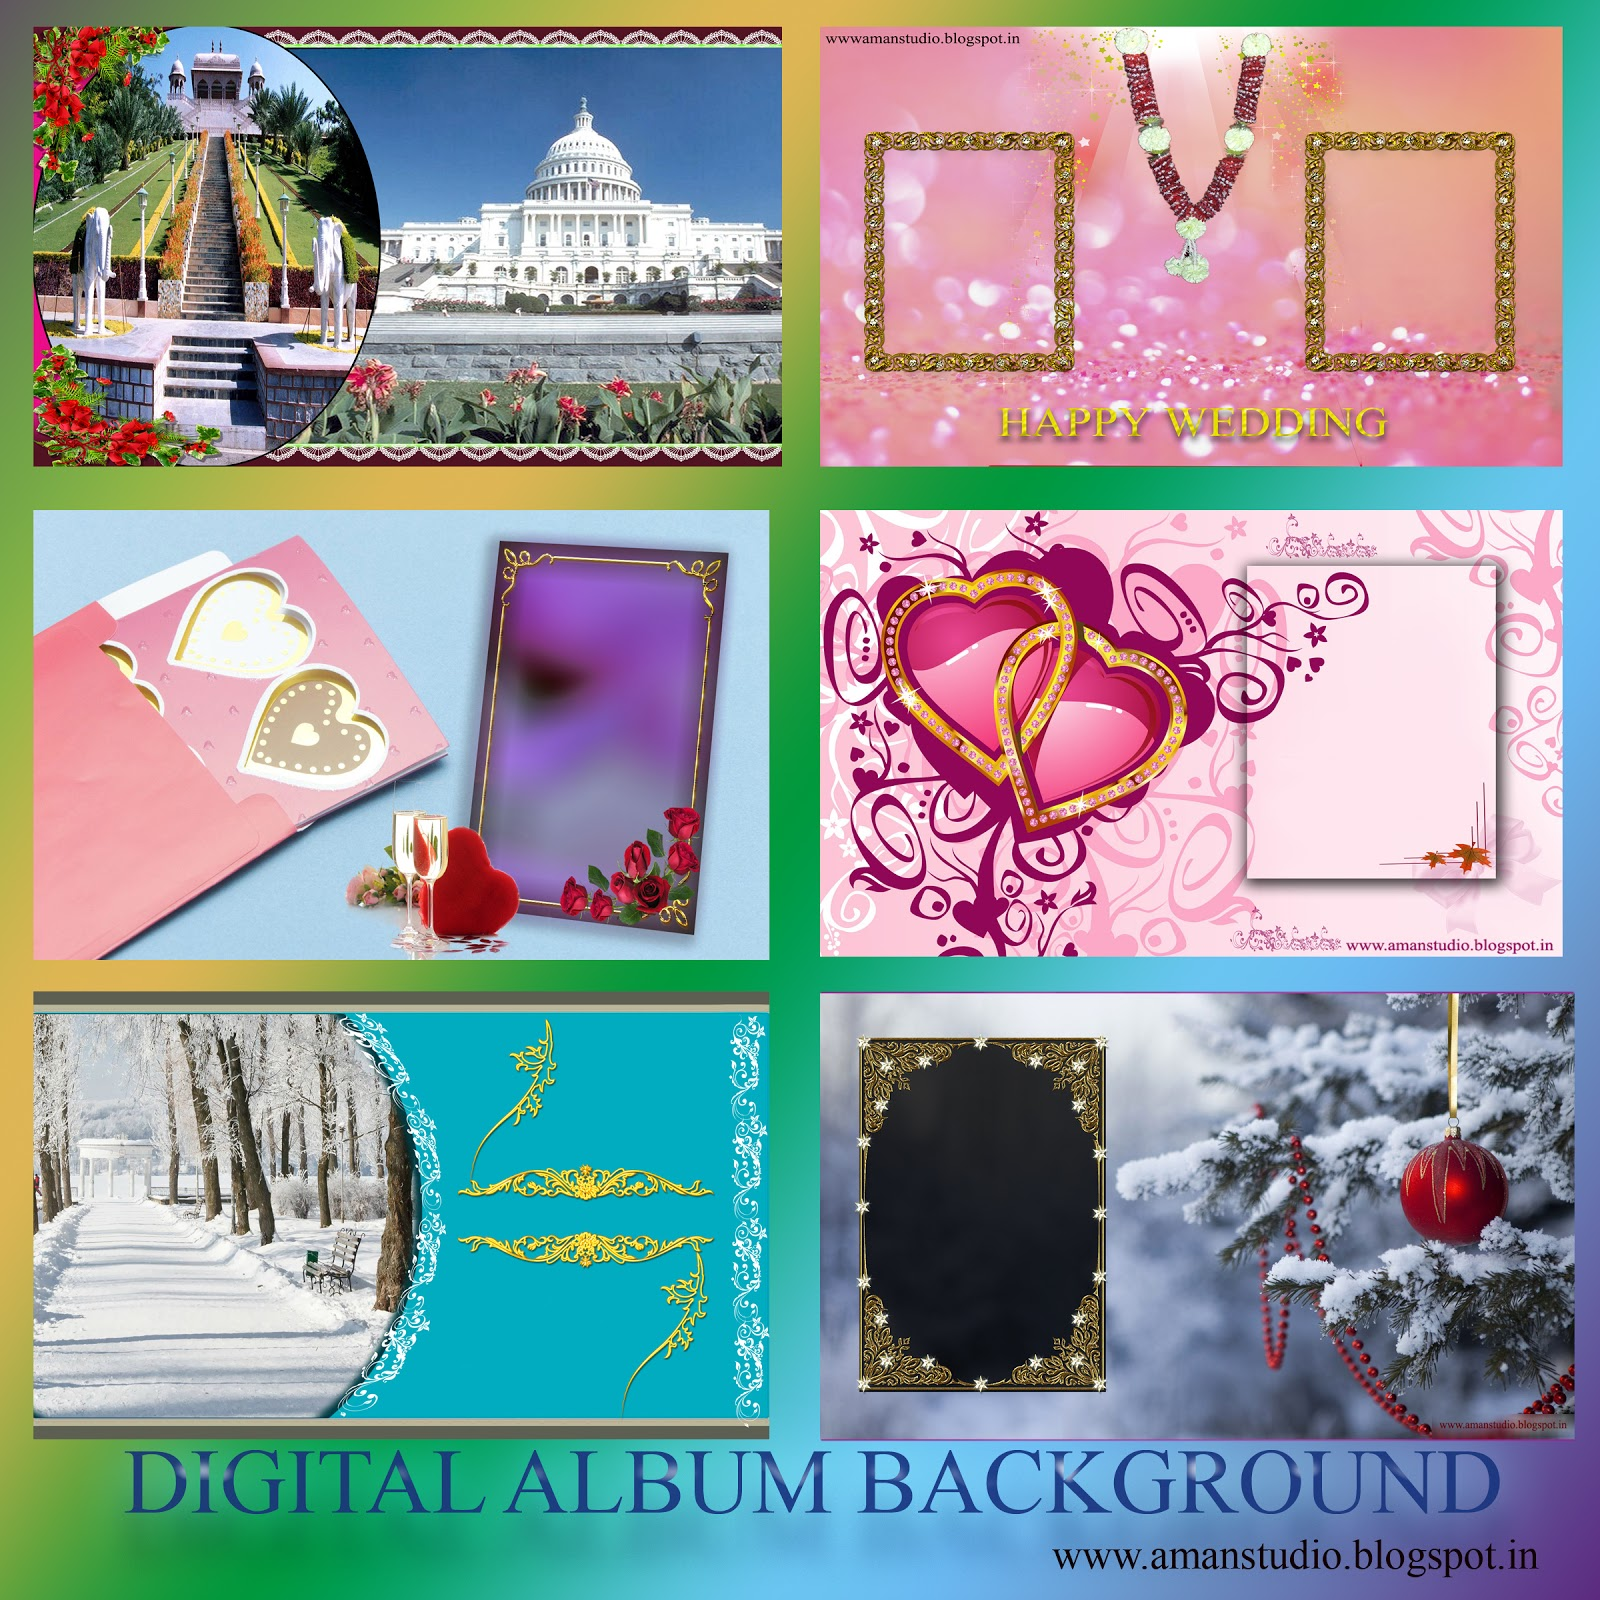 Wedding Album Design Software Digital Photography Free Download: Aman Studio: Digital Album Backgrounds Psd & Jpeg